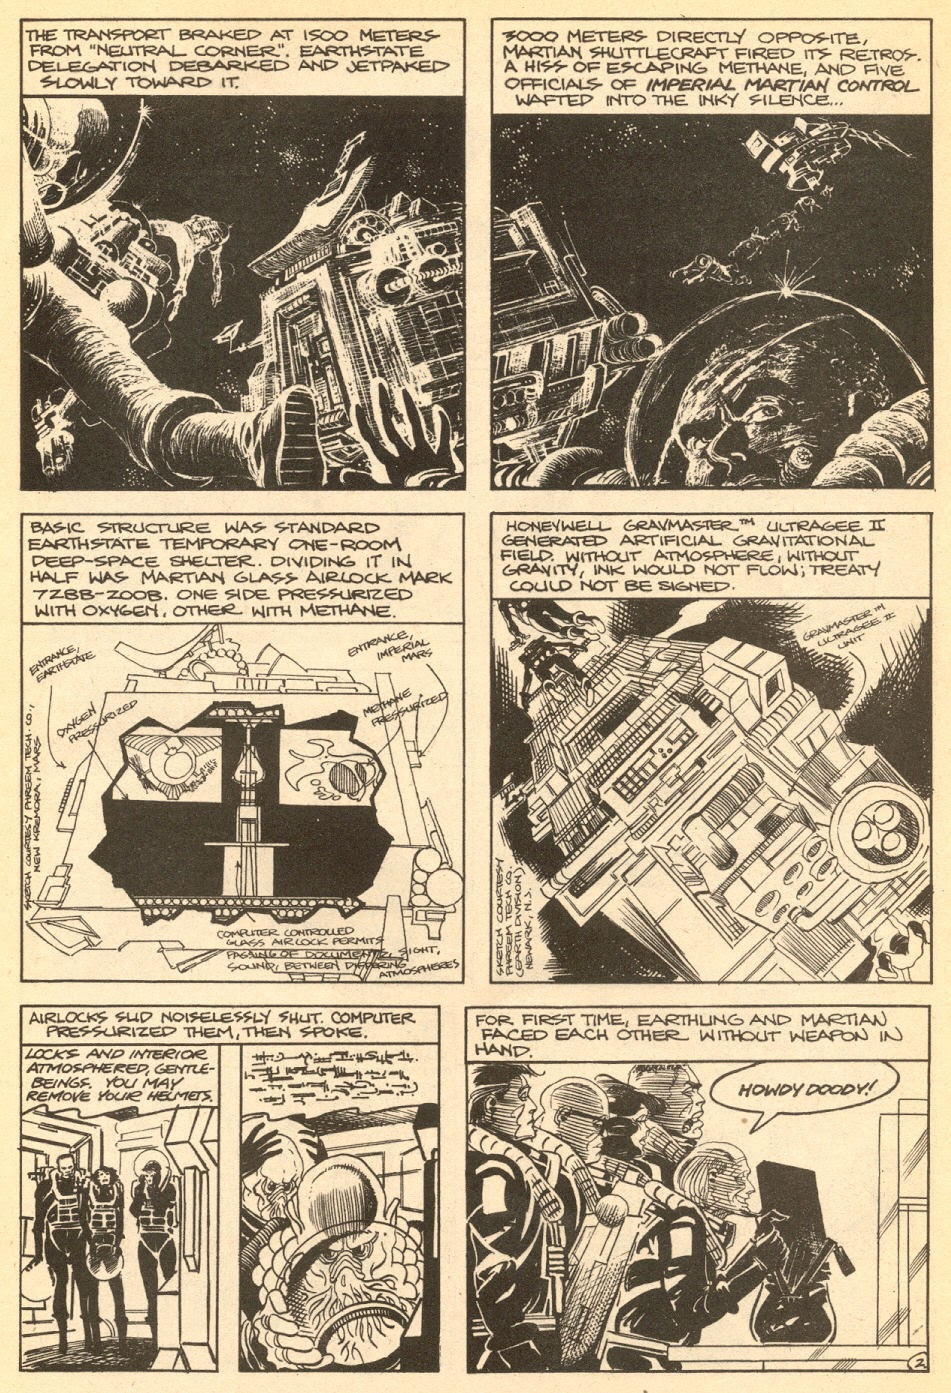 Commies from Mars: The Red Planet issue 2 - Page 8